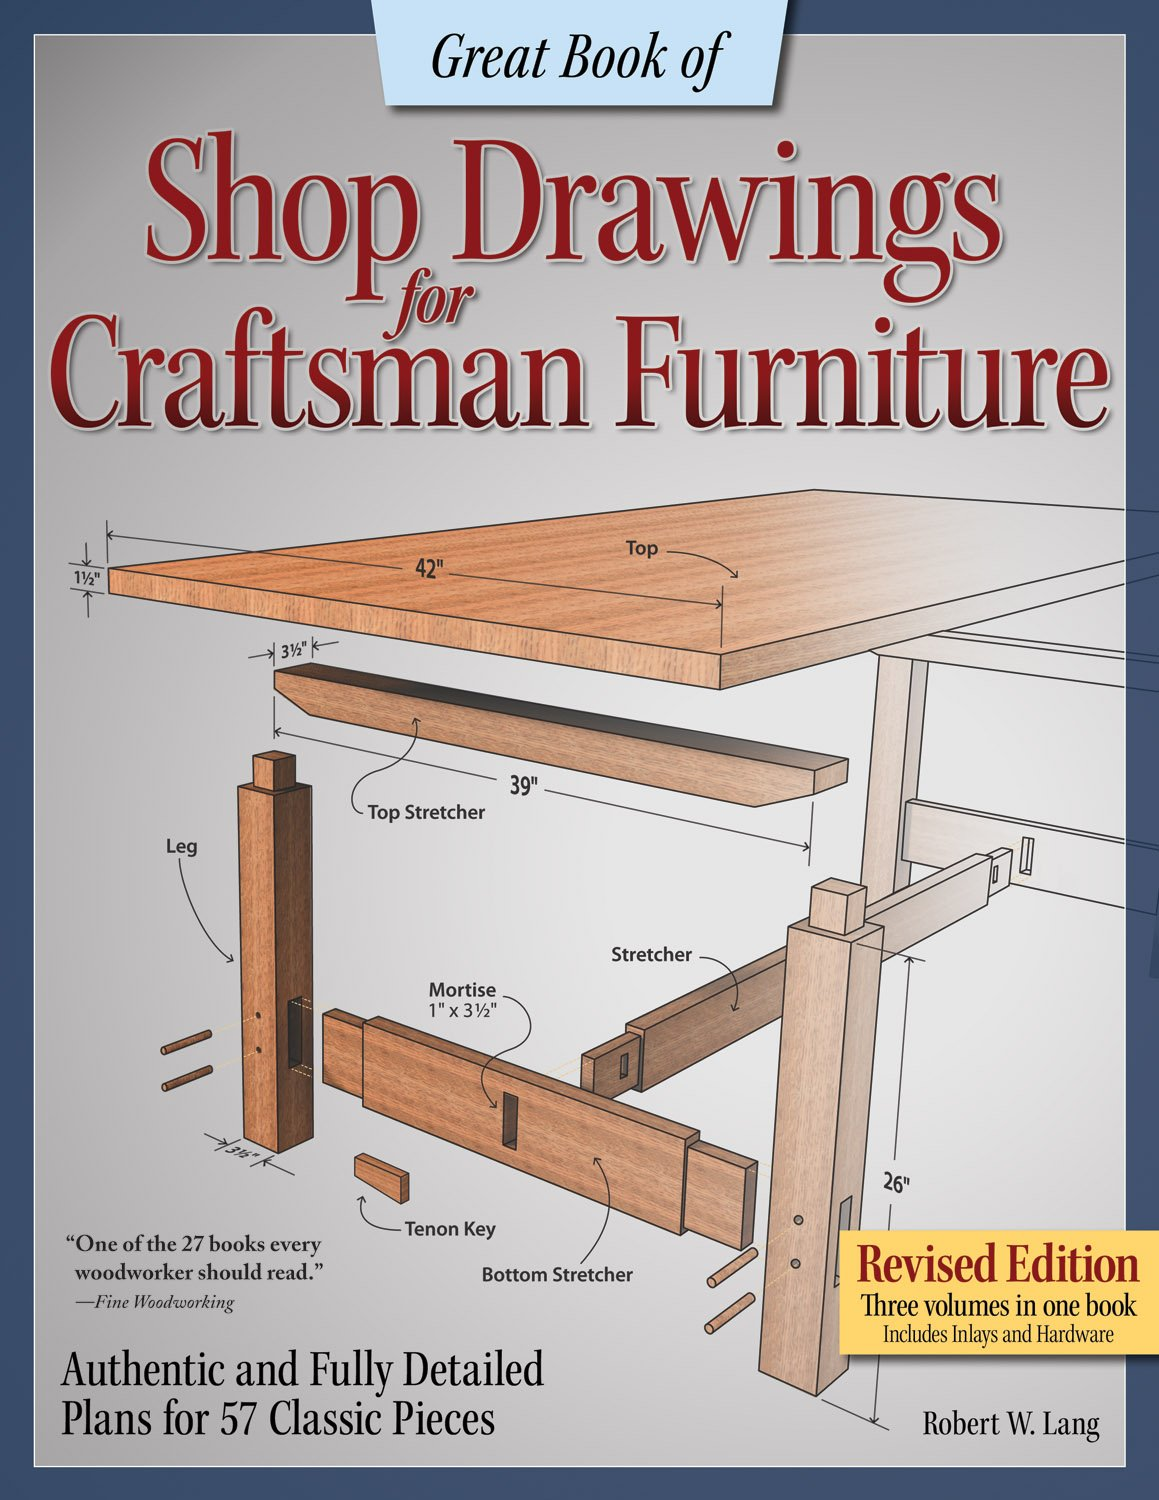 Great Book of Shop Drawings for Craftsman Furniture, Revised Edition: Authentic and Fully Detailed Plans for 57 Classic Pieces